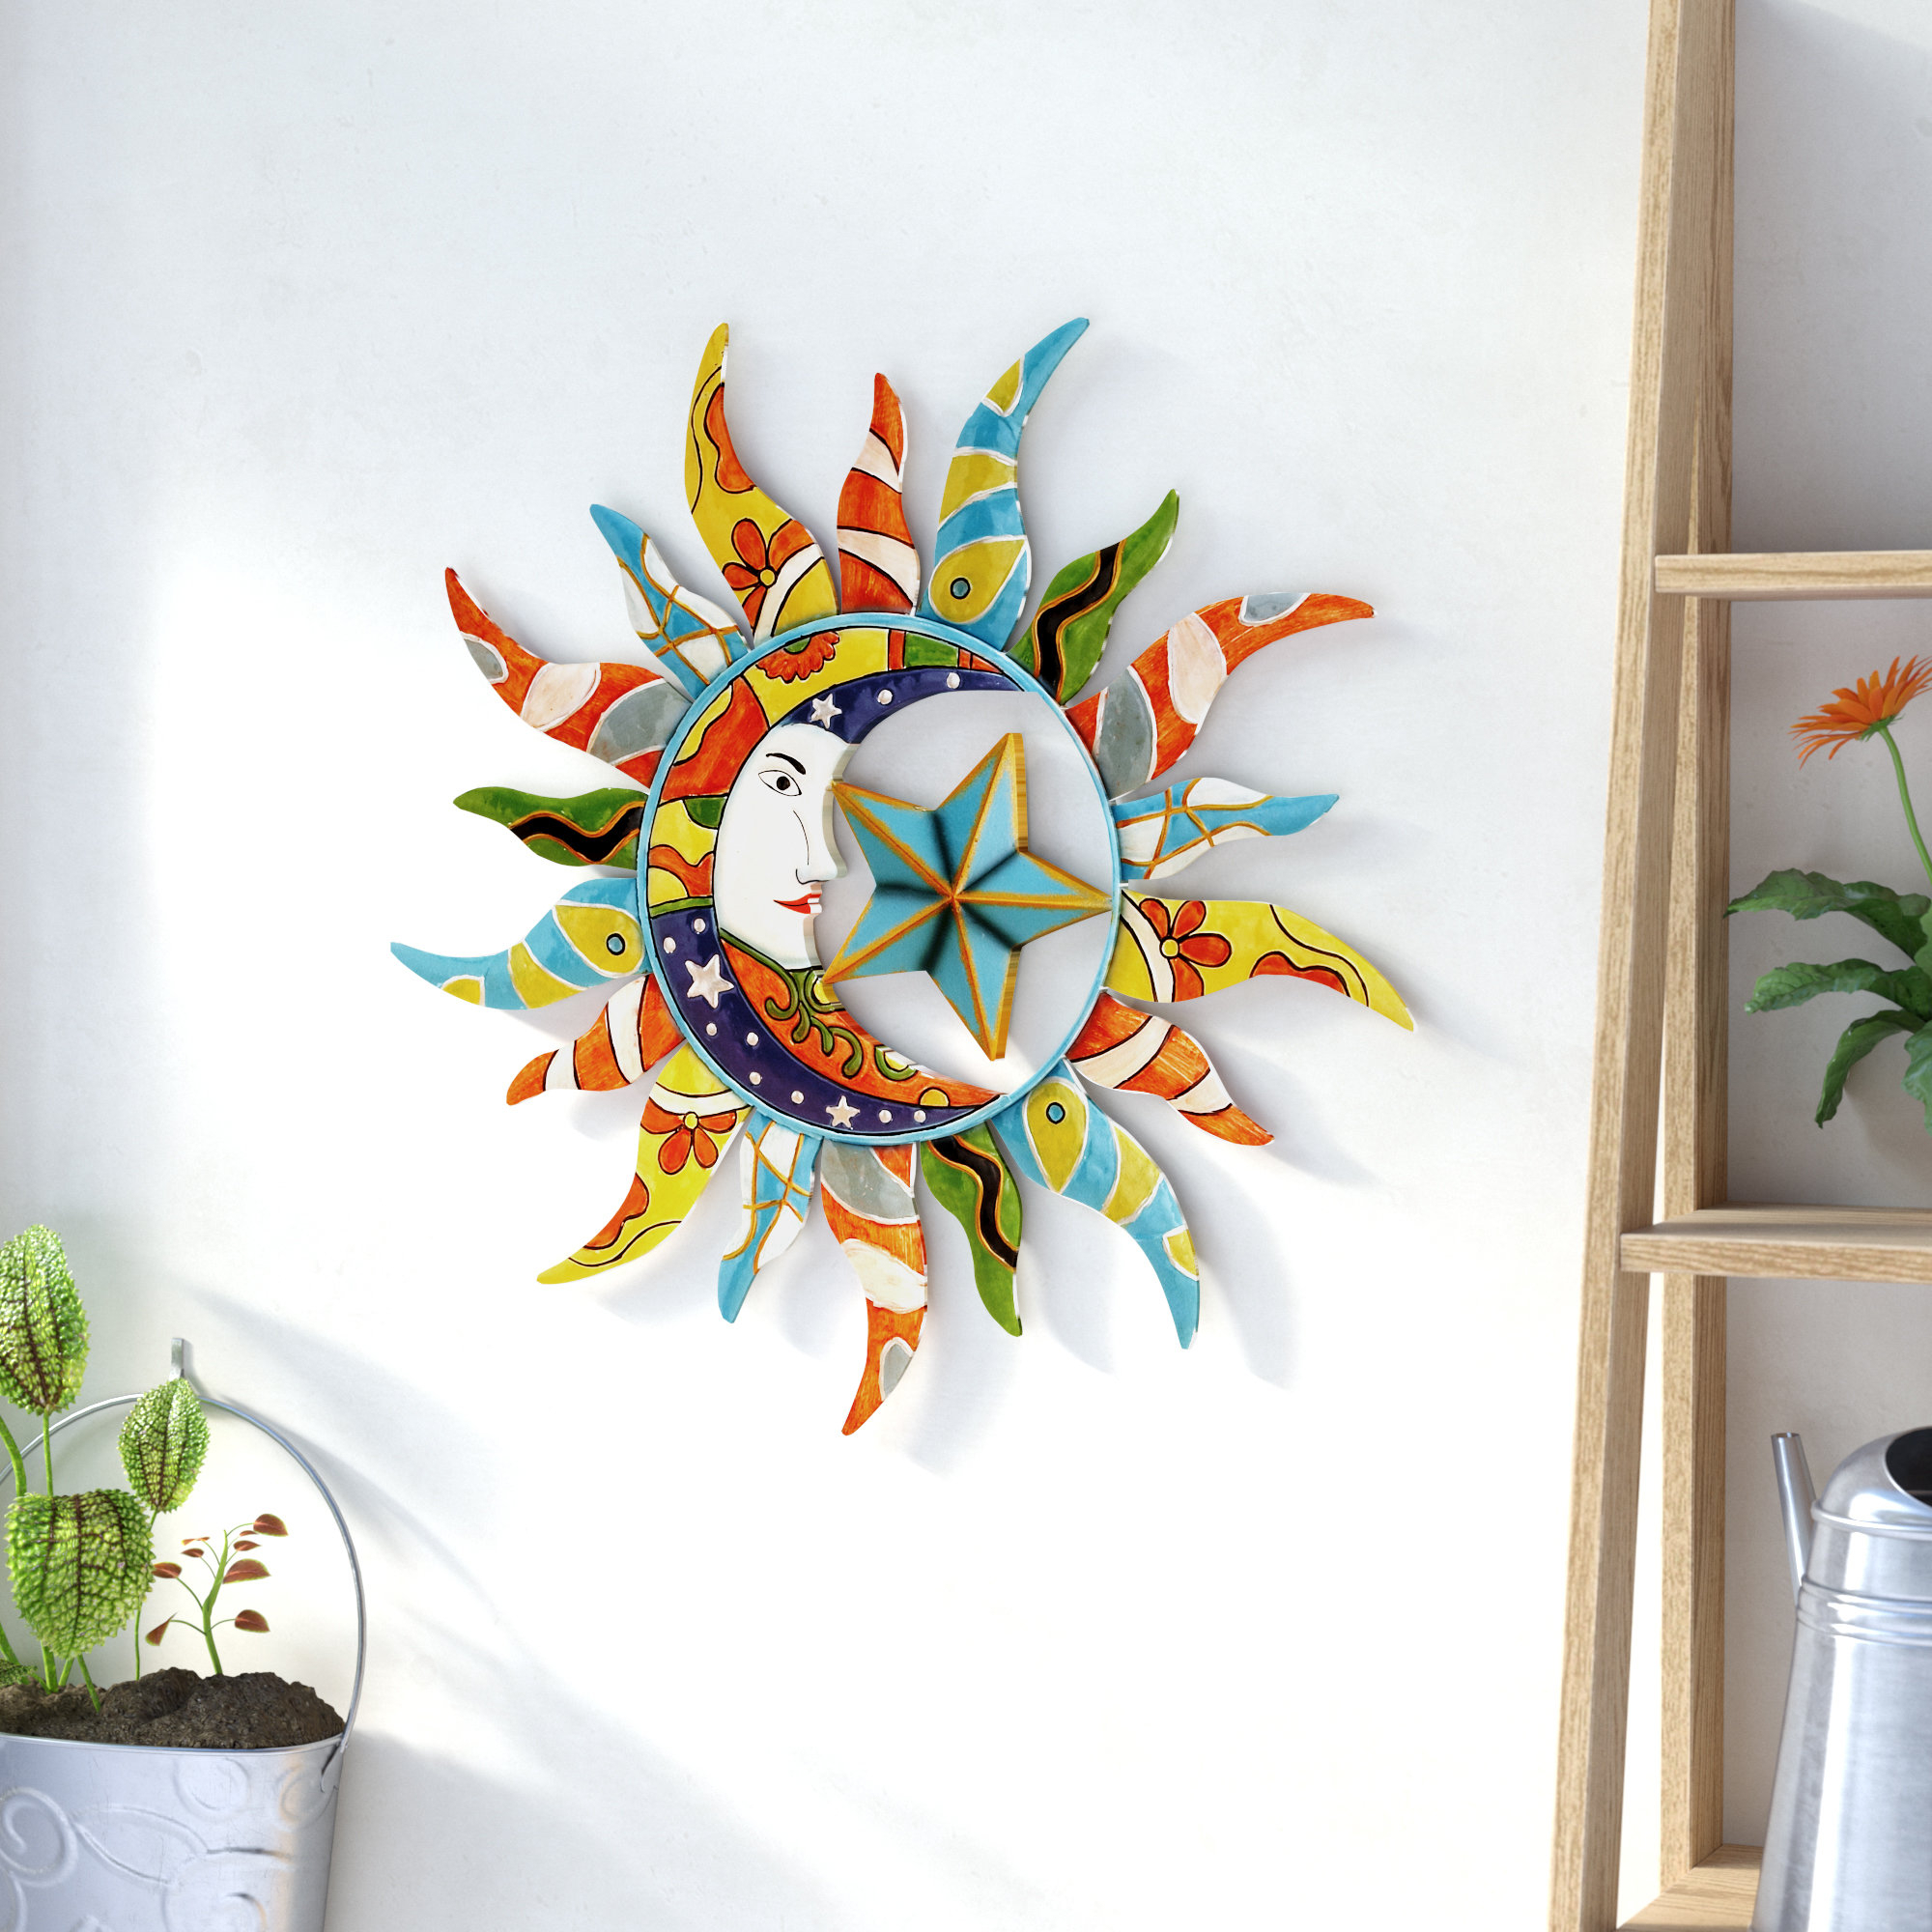 Nature Metal Sun Wall Décor Intended For Recycled Moon And Sun Wall Decor (View 12 of 30)